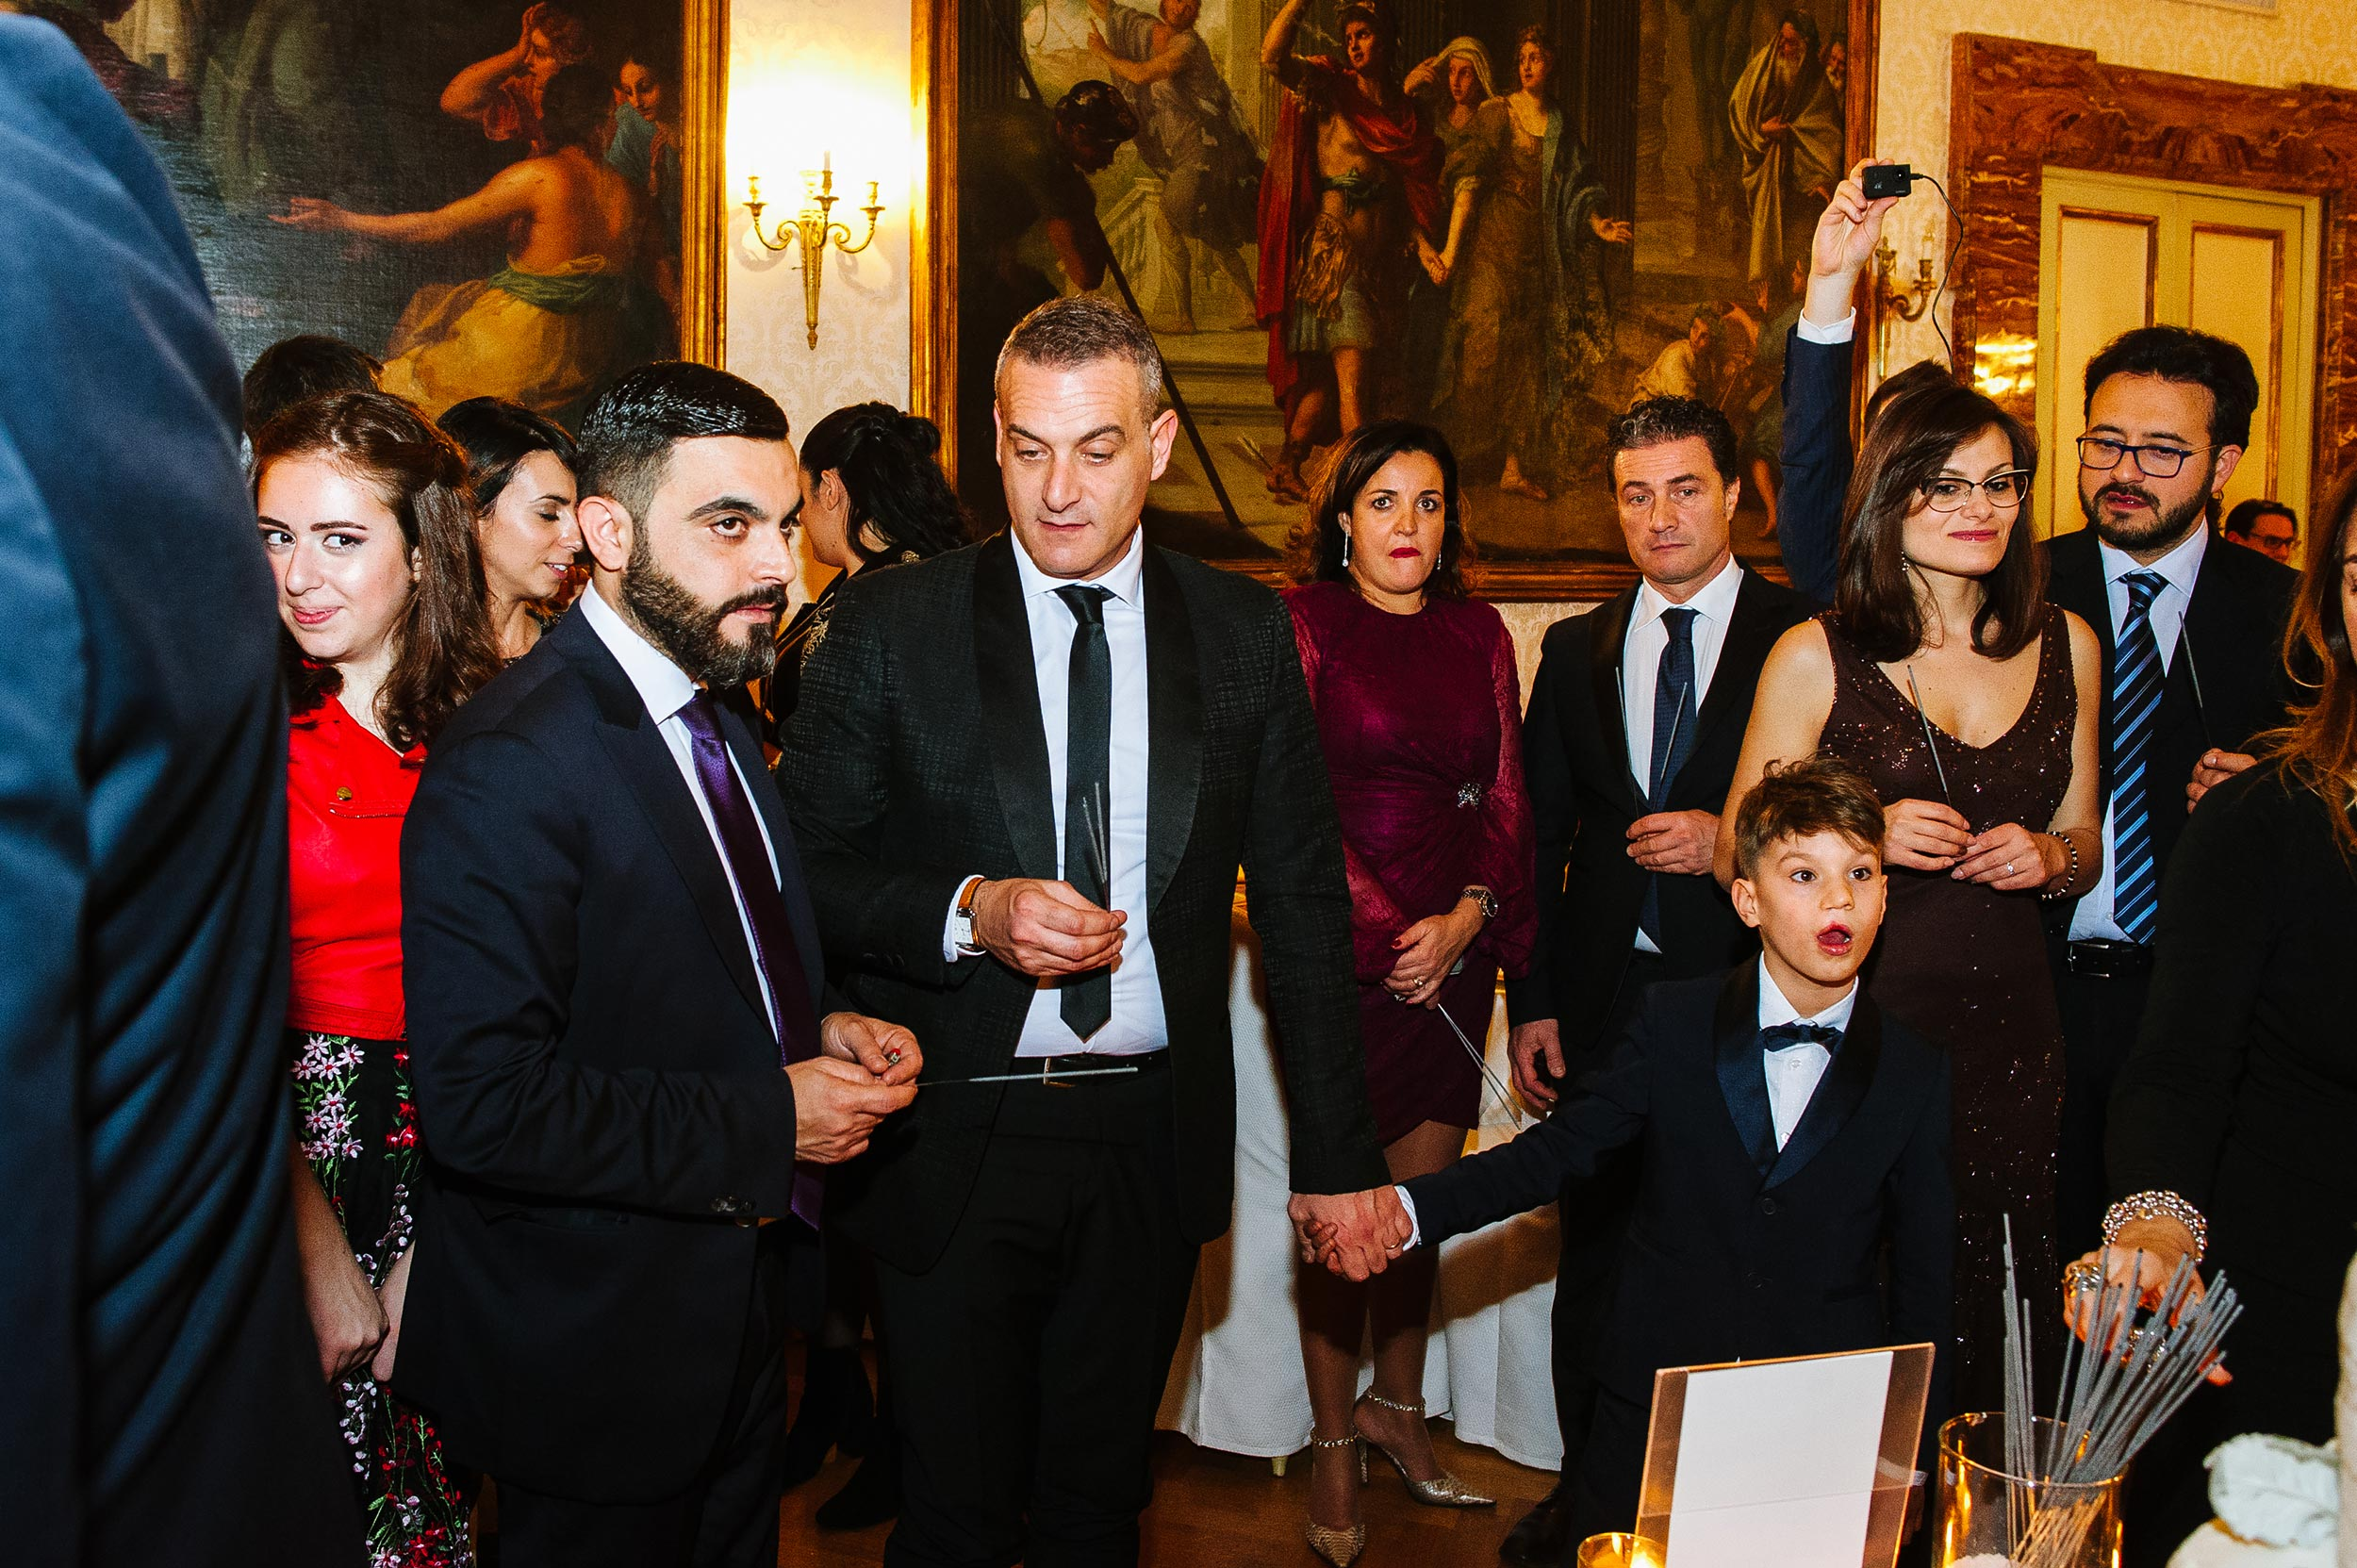 wedding-in-naples-people-waiting-for-cake-cutting-documentary--candid-wedding-photography-by-Alessandro-Avenali.jpg